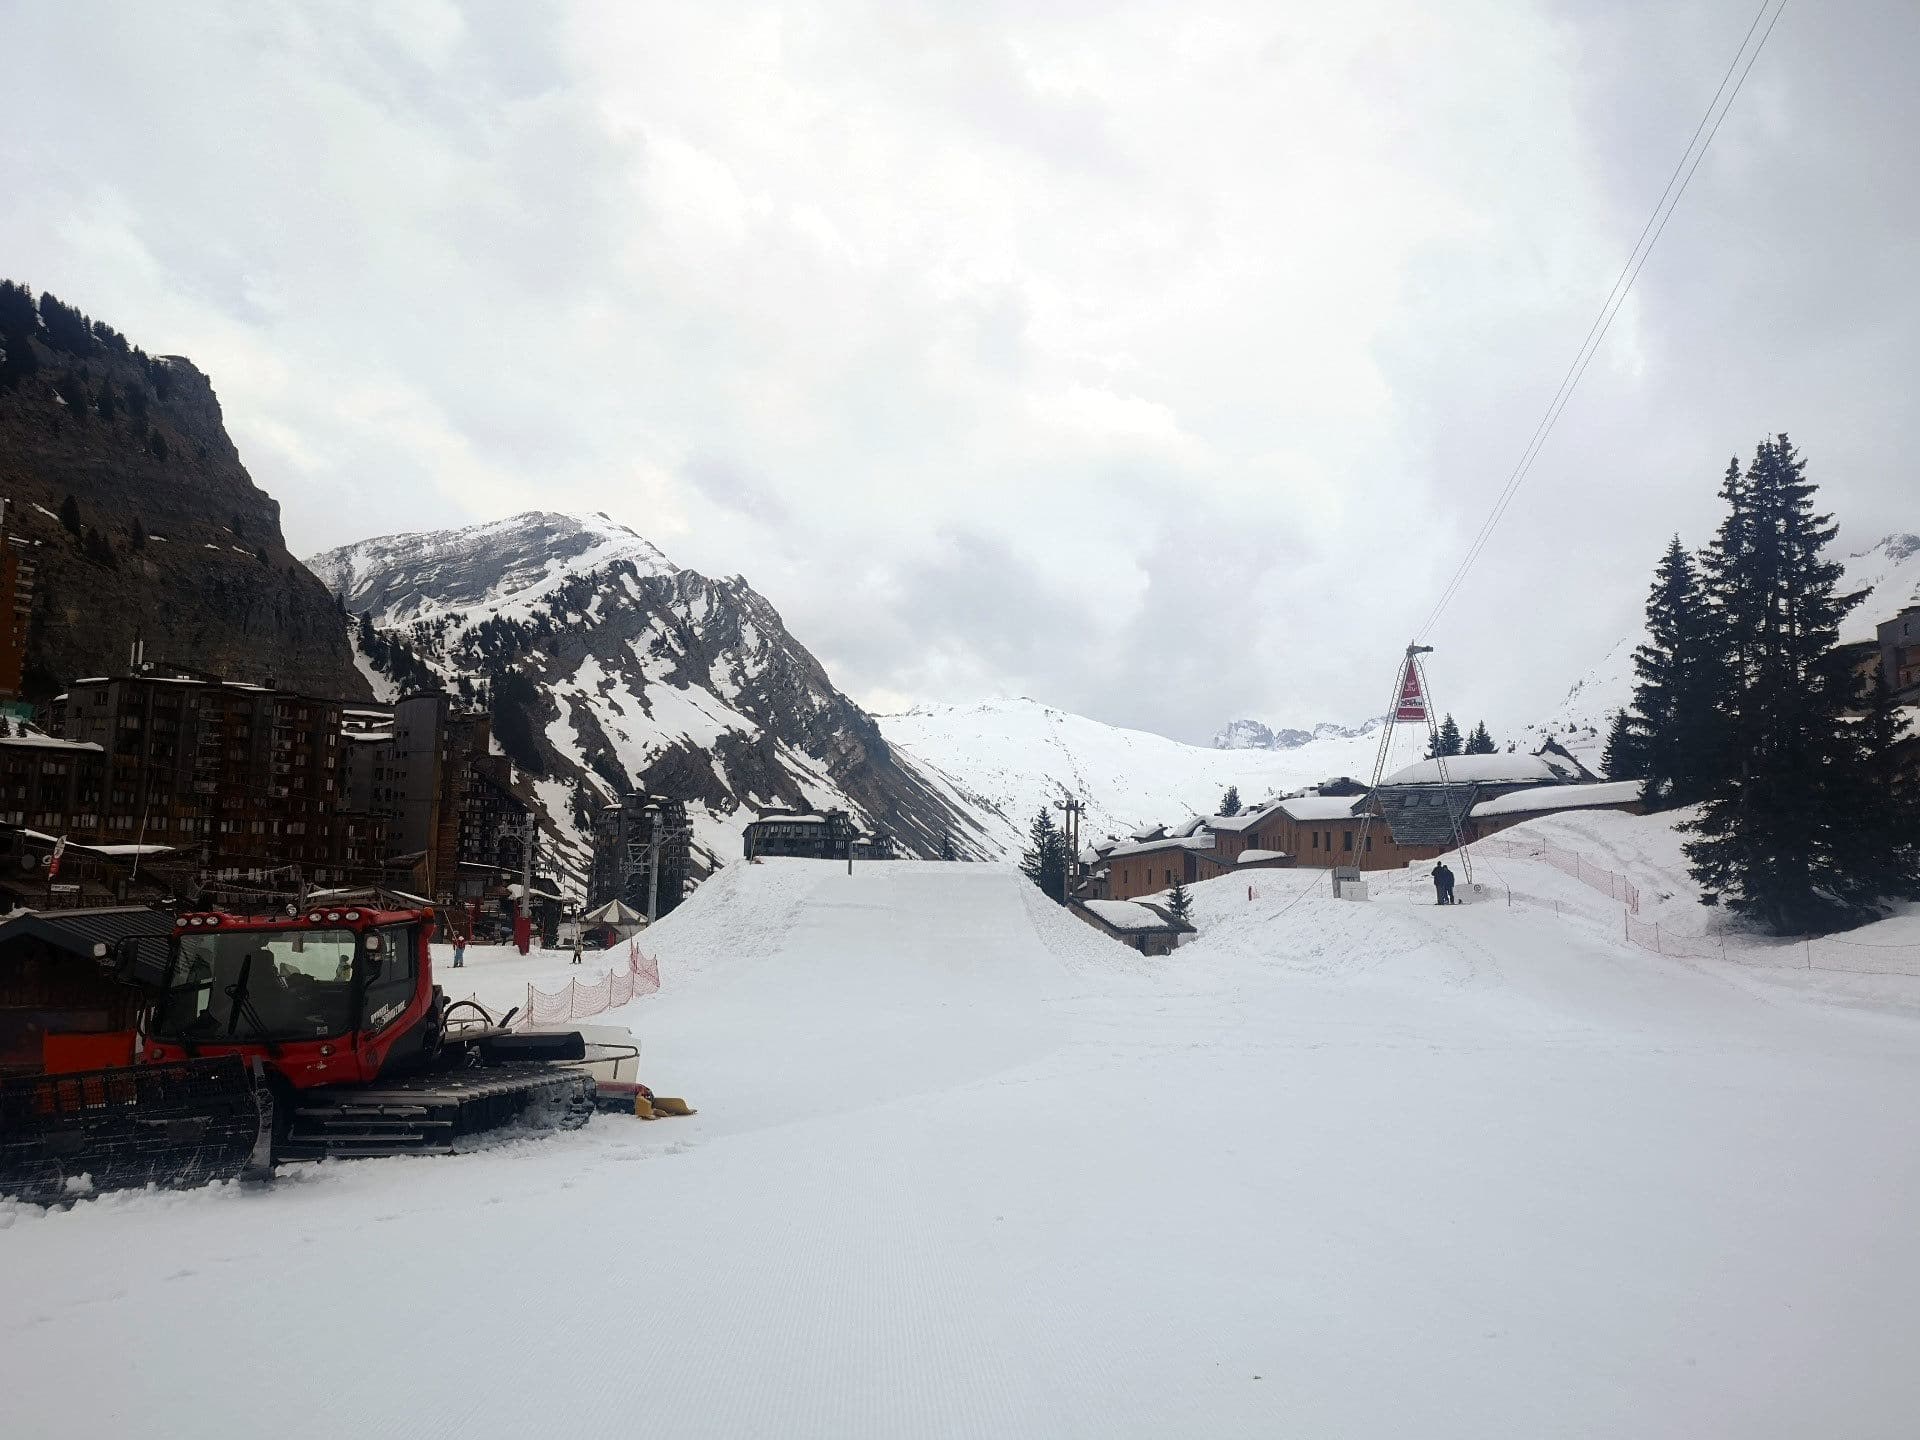 wakestation-avoriaz-1800-sping-xperience